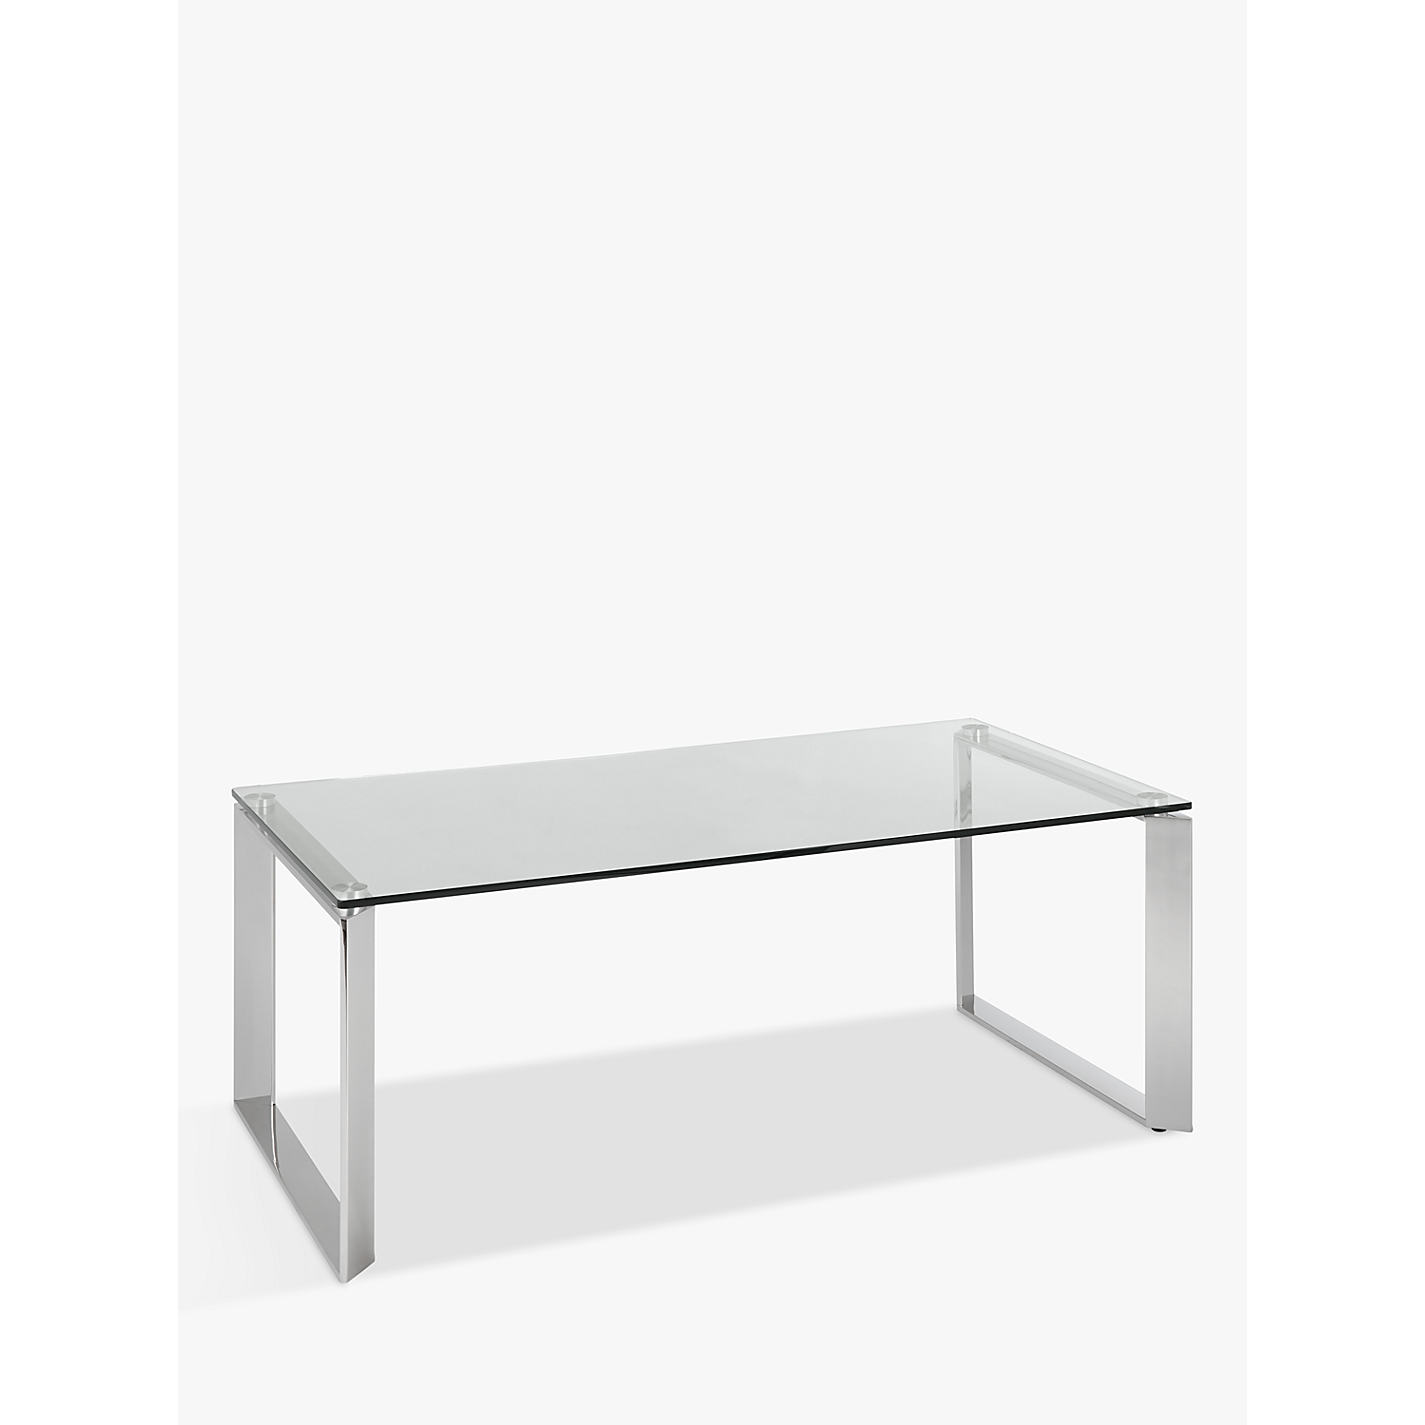 Buy John Lewis Tropez Coffee Table Online At Johnlewis John Lewis Living Room Tables